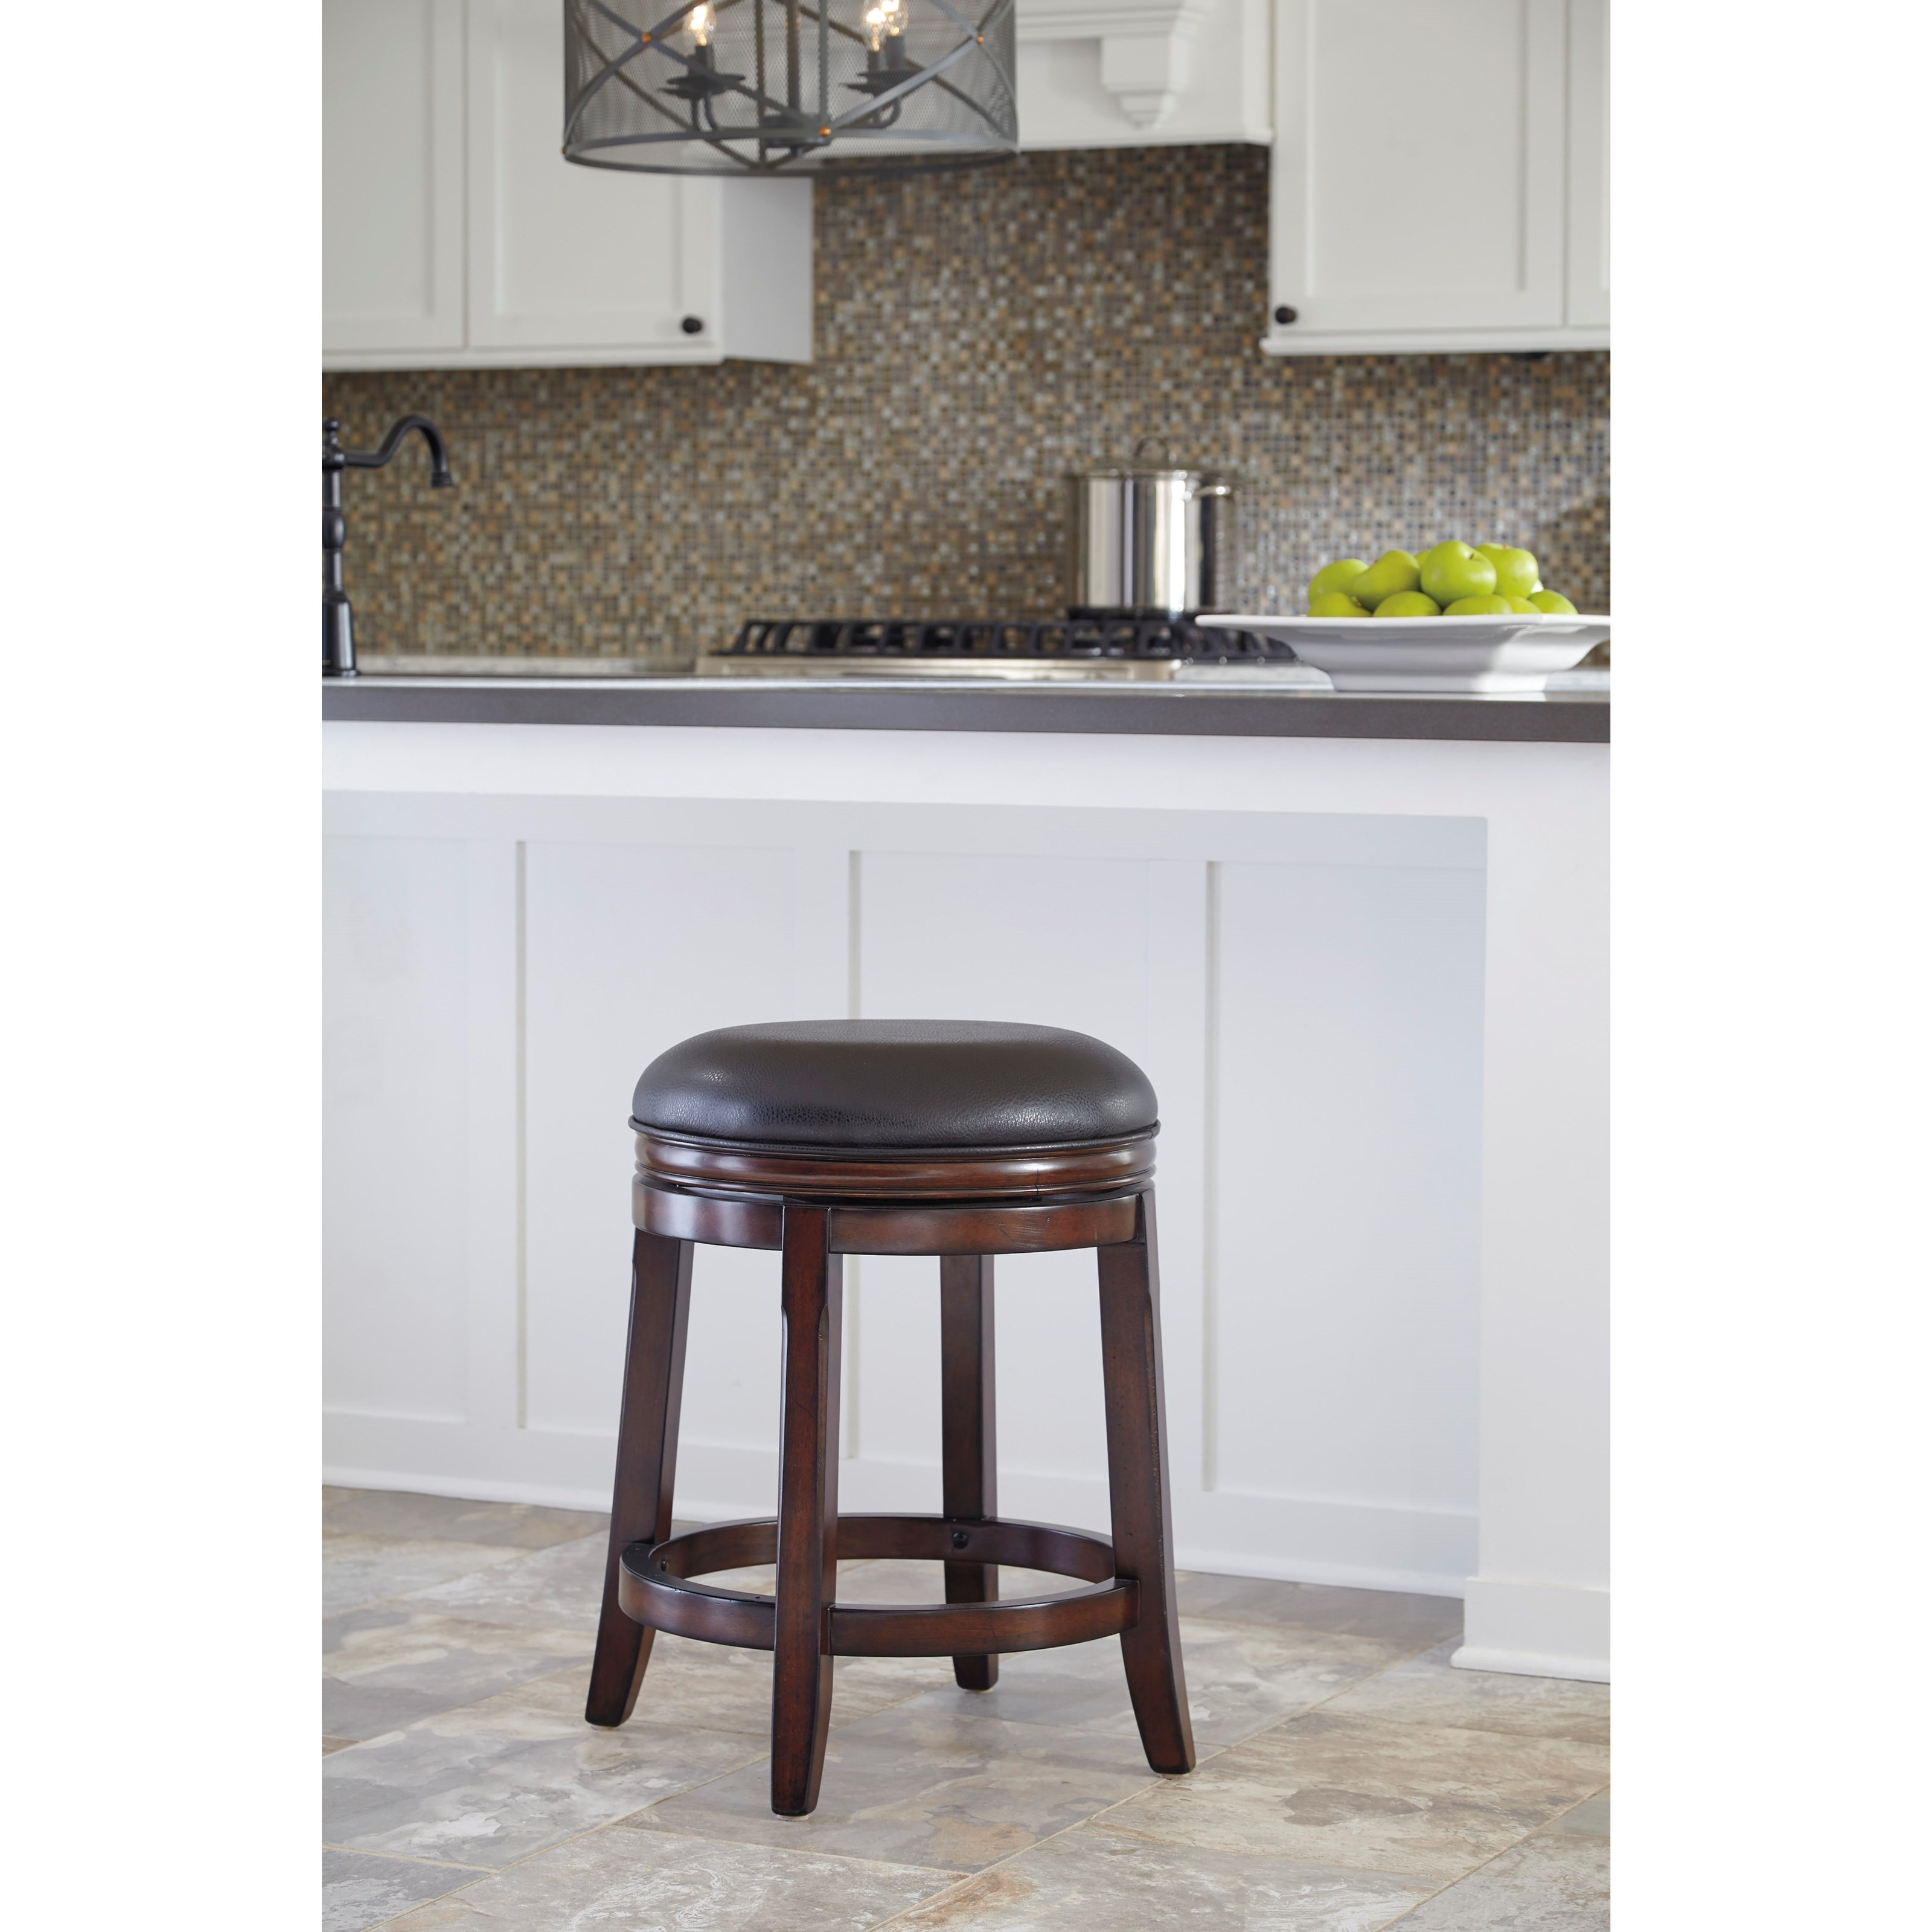 Ashley Furniture Porter D697 324 Counter Height Backless